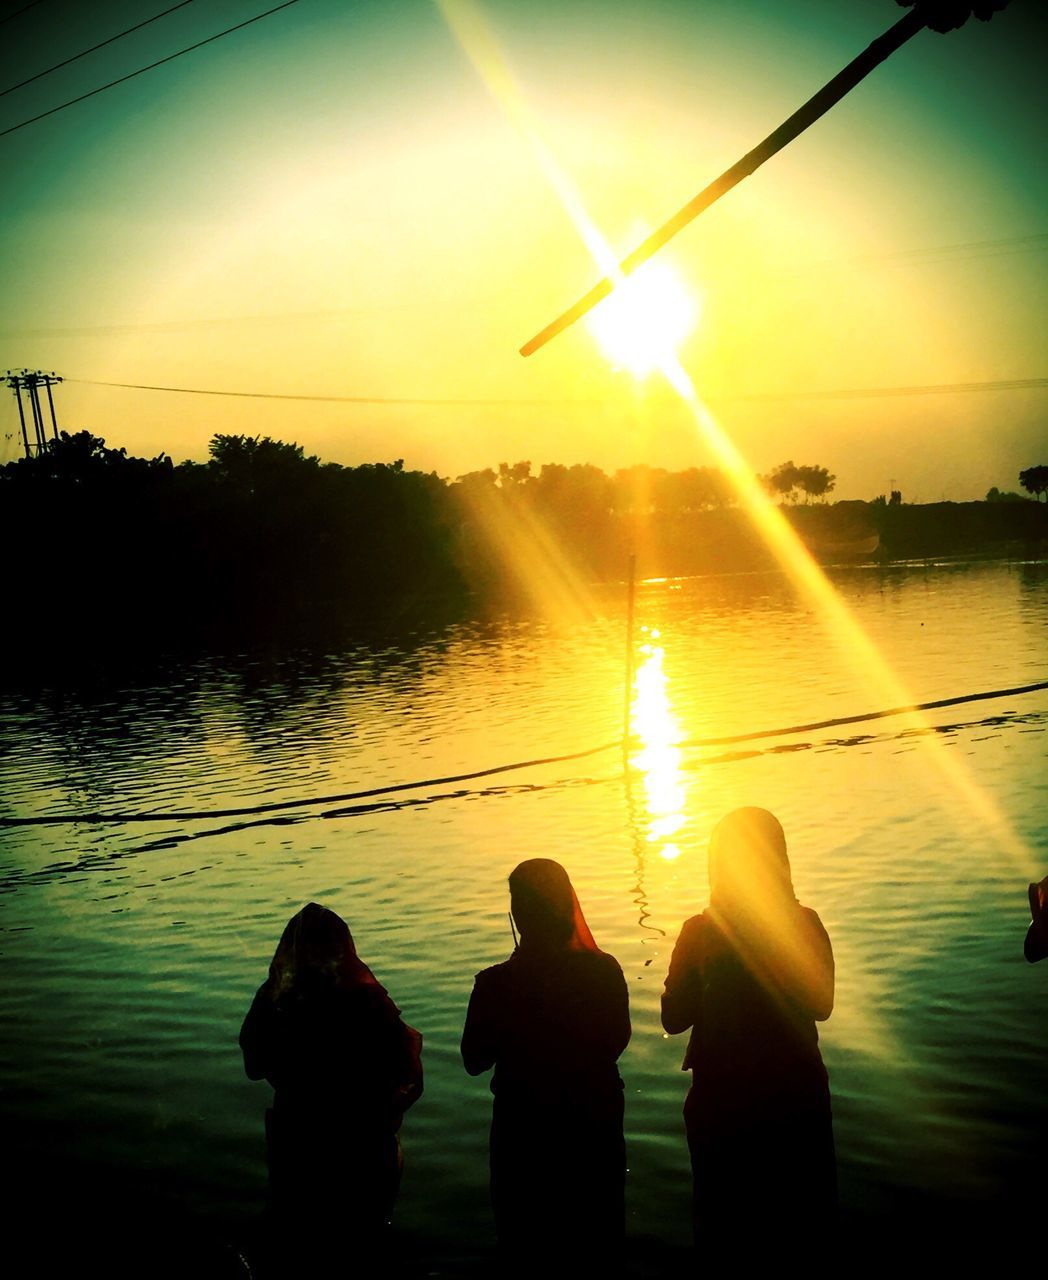 sunset, water, silhouette, sun, nature, sunbeam, sunlight, beauty in nature, real people, scenics, lake, reflection, men, standing, outdoors, tranquility, tranquil scene, leisure activity, sky, fishing pole, two people, lifestyles, togetherness, day, people